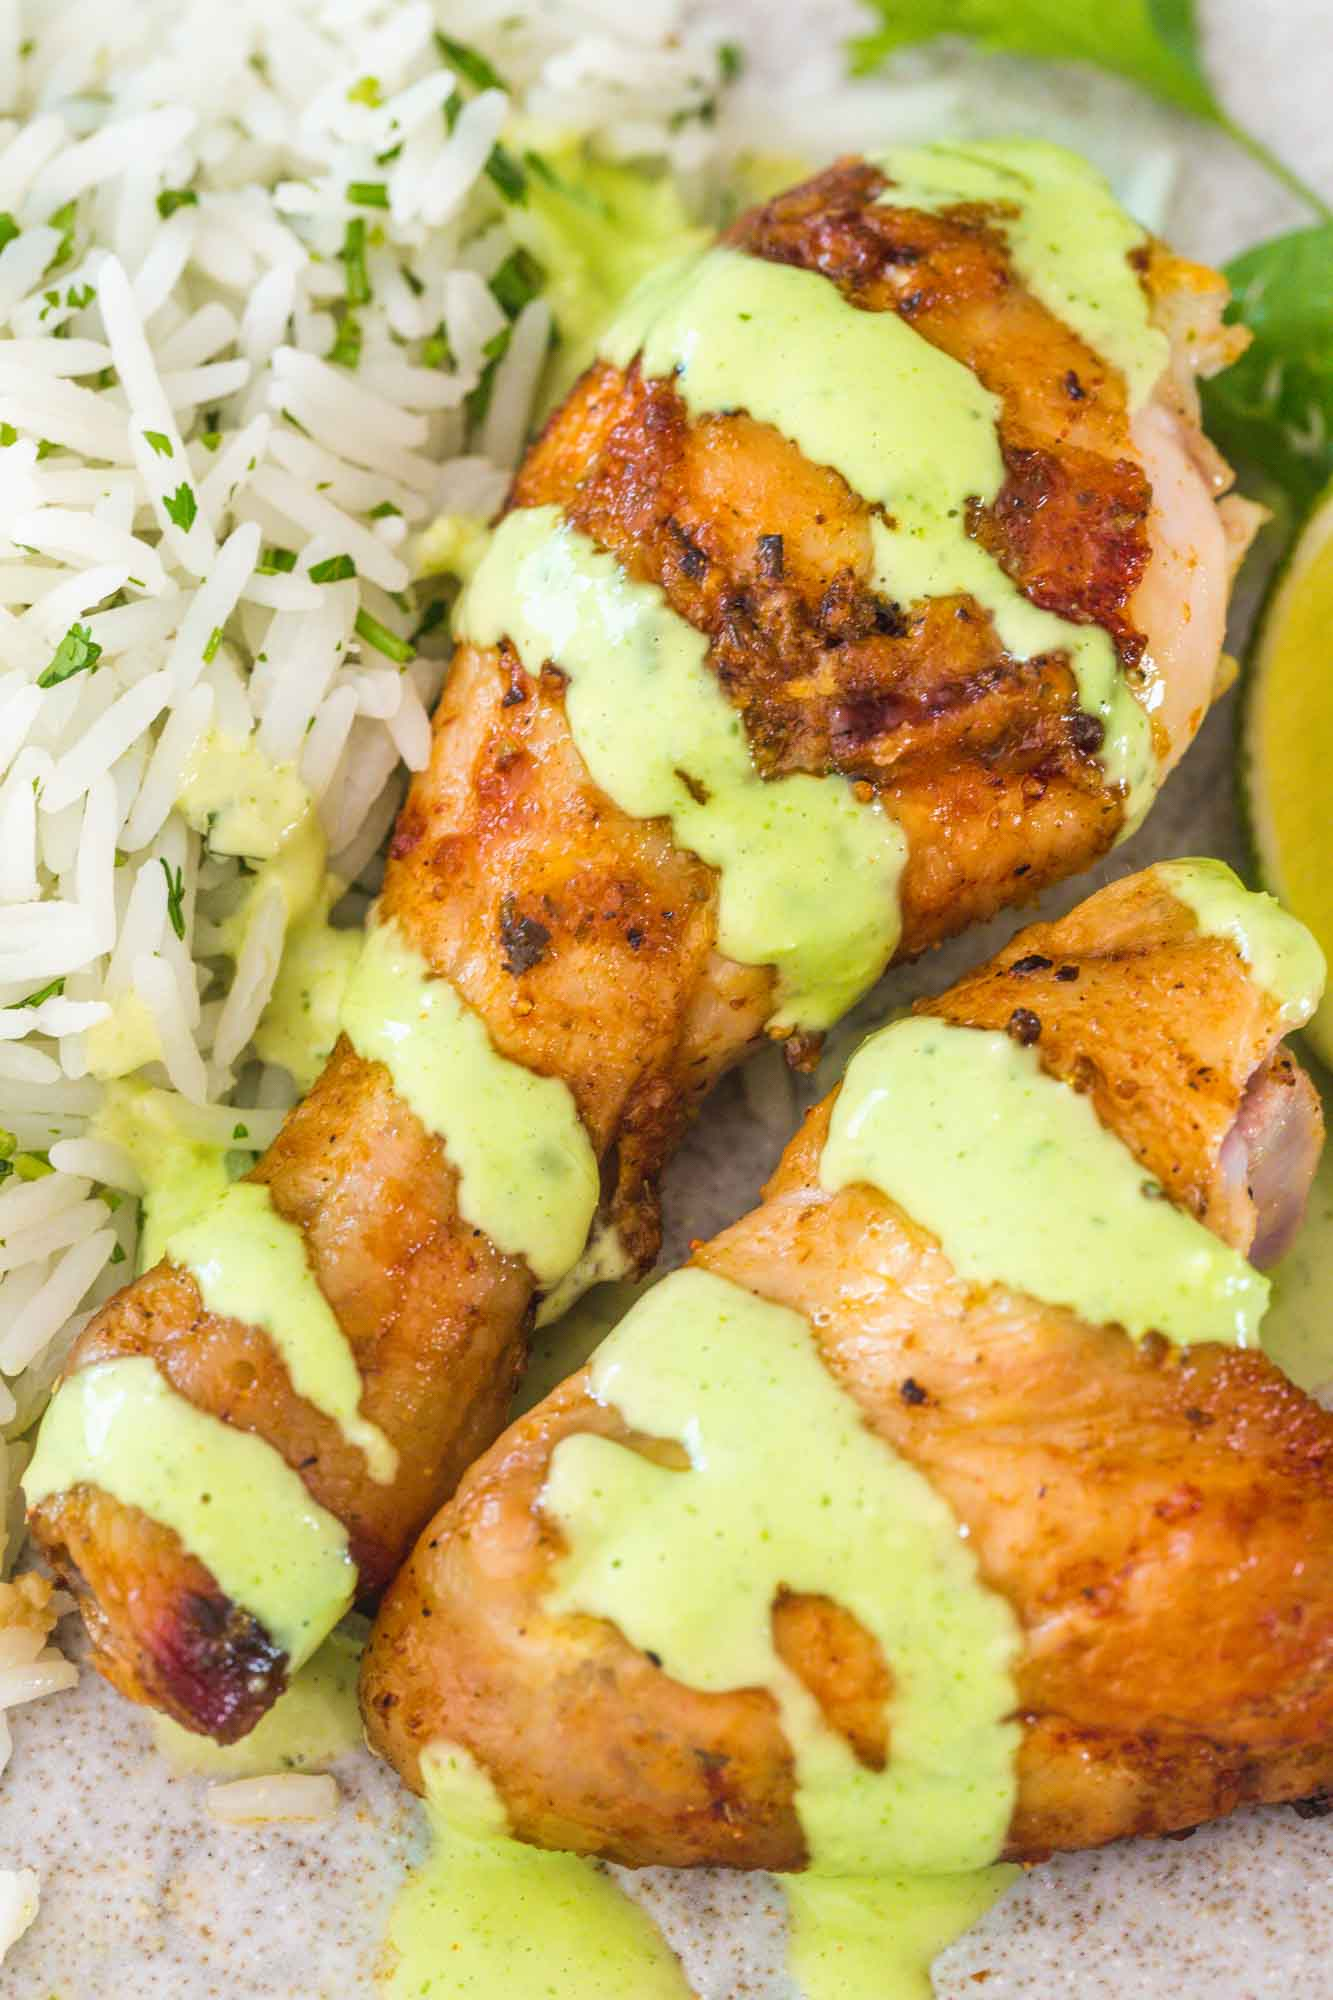 Peruvian chicken drumstick and wing with aji verde sauce, served over Mexican cilantro lime rice